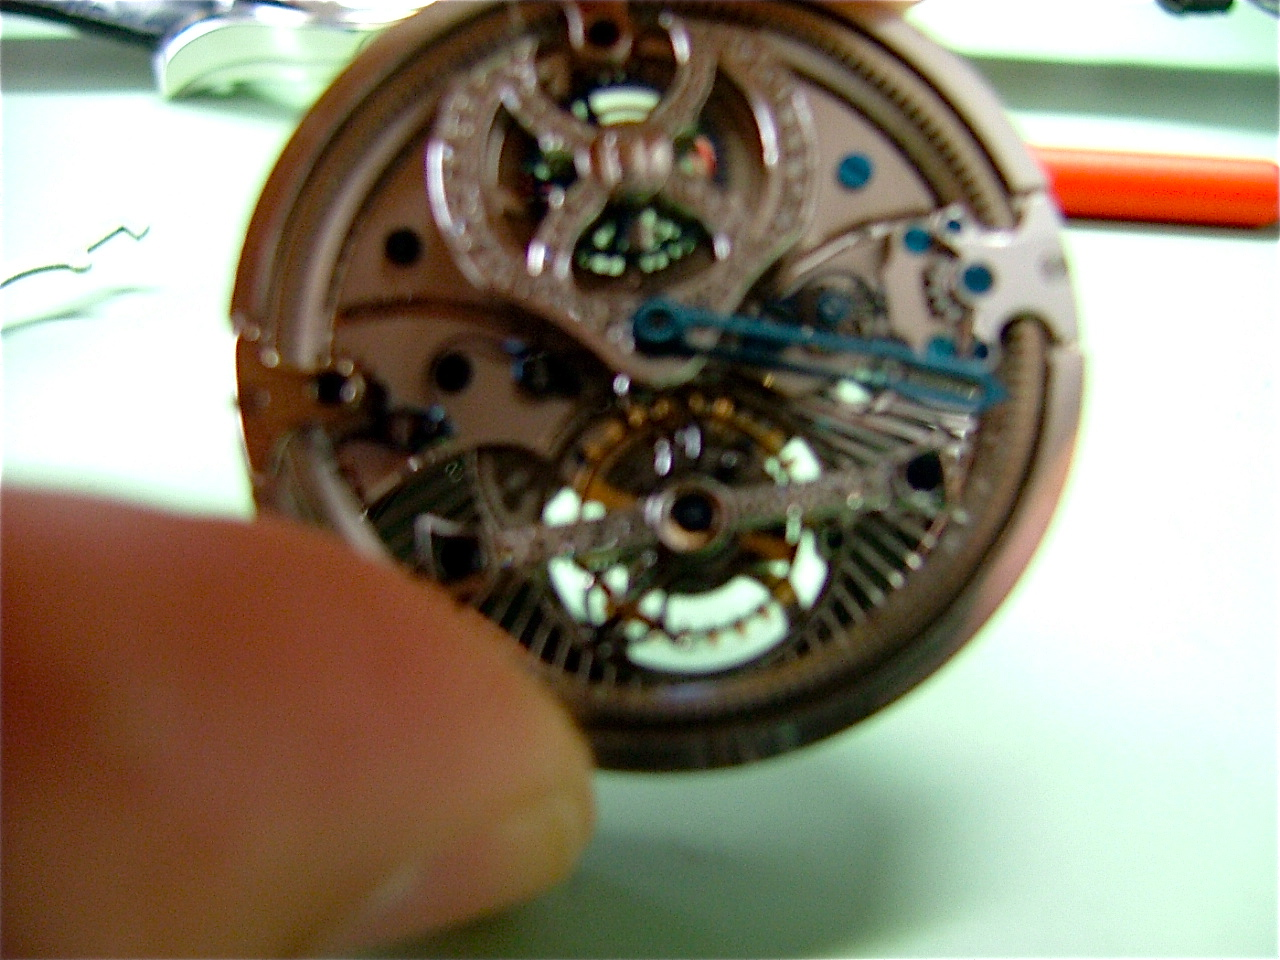 christophe_claret_tourbillon_5.jpg